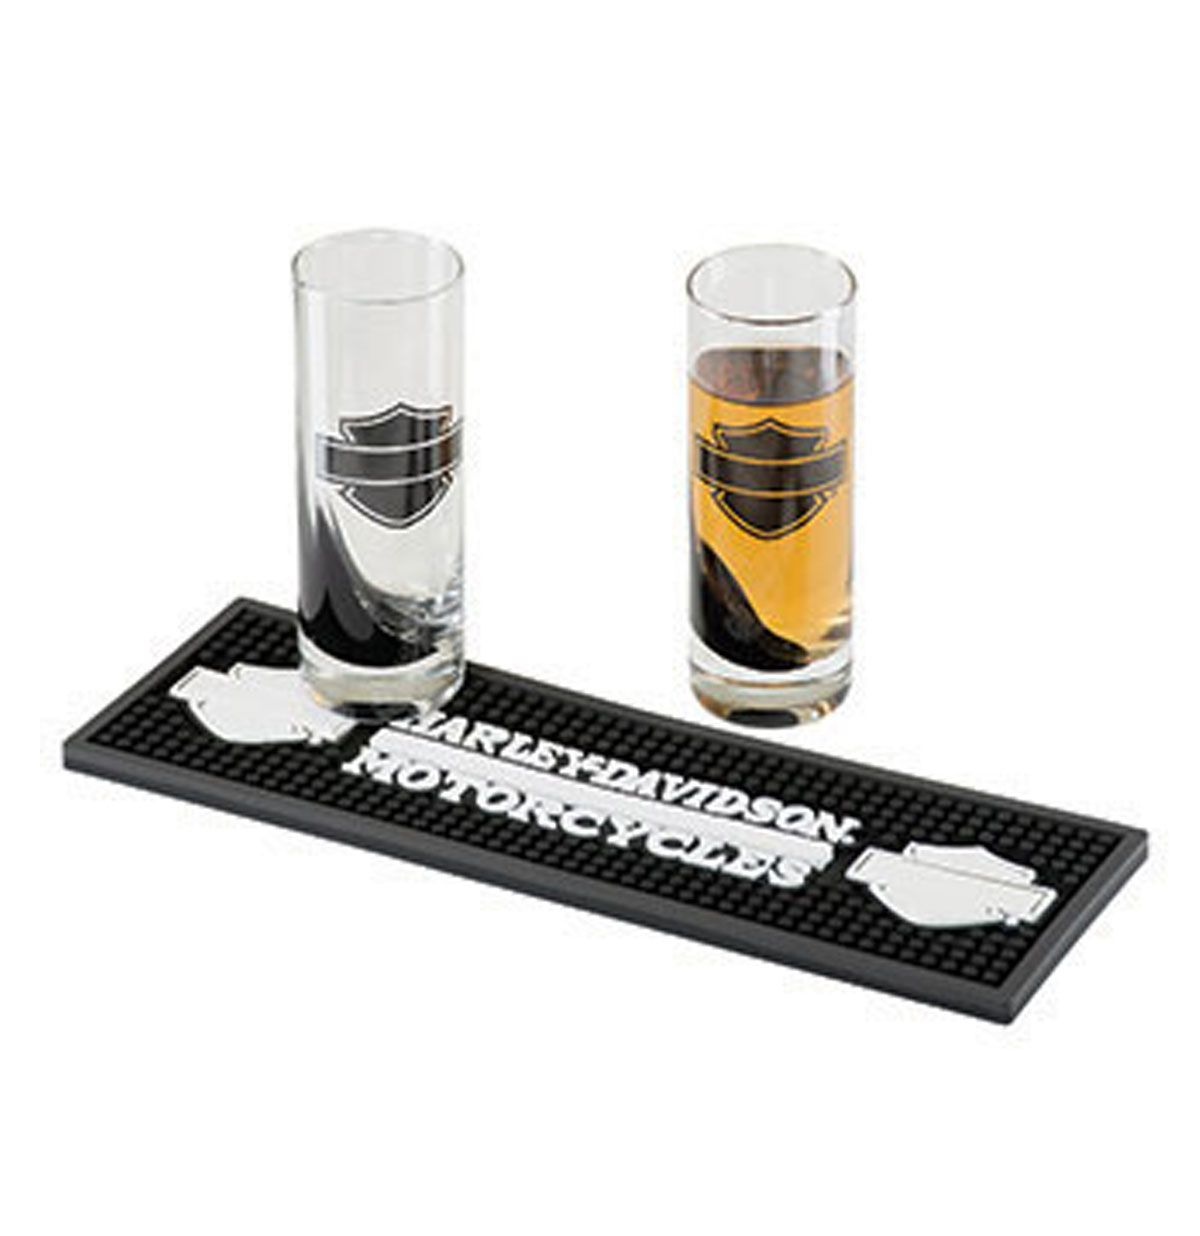 1200x1236 Harley Davidson Piston Shot Glass Set